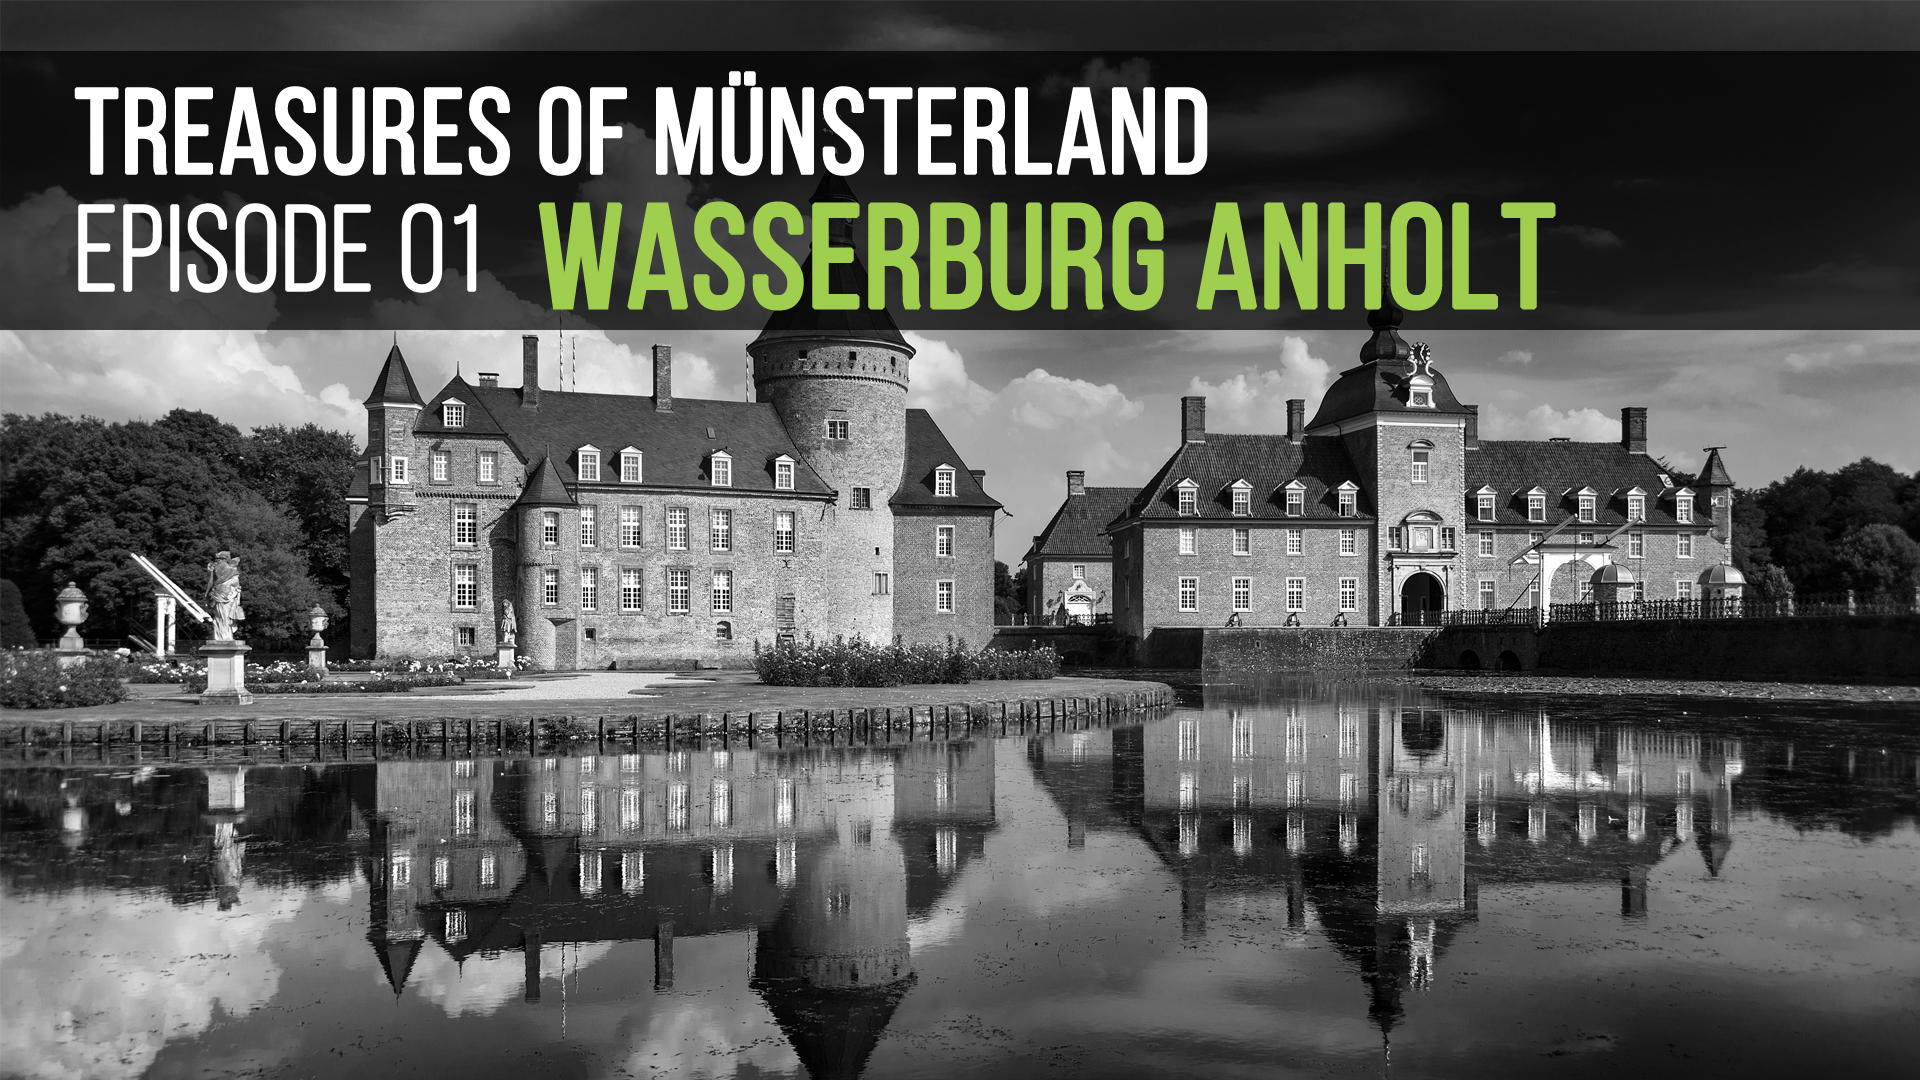 Treasures of Muensterland 01 - Wasserburg Anholt